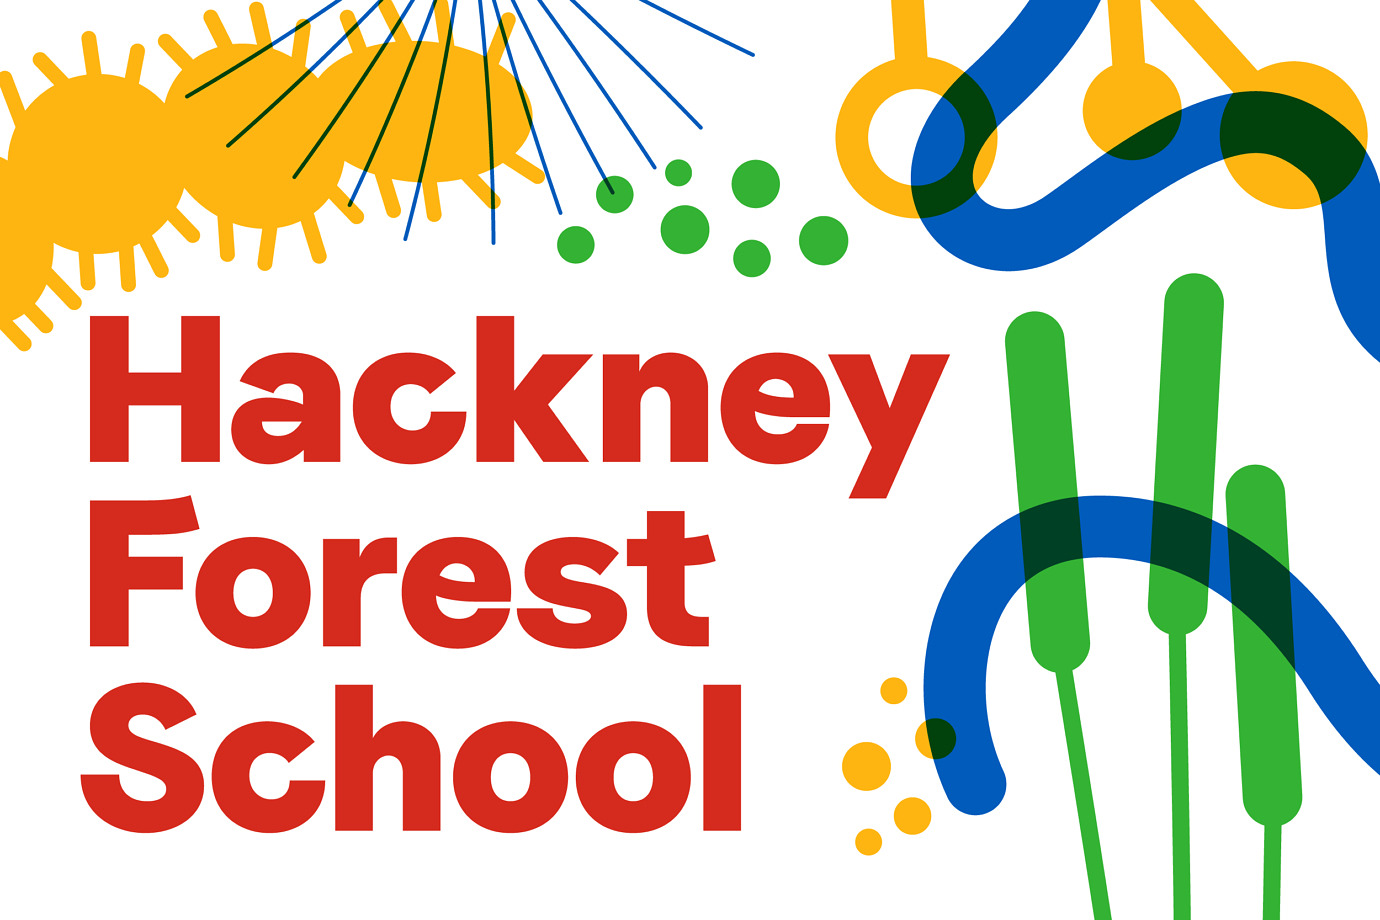 http://spystudio.co.uk/wp-content/uploads/2016/07/Hackney_Forest_School-Journal-1-1380x920.jpg